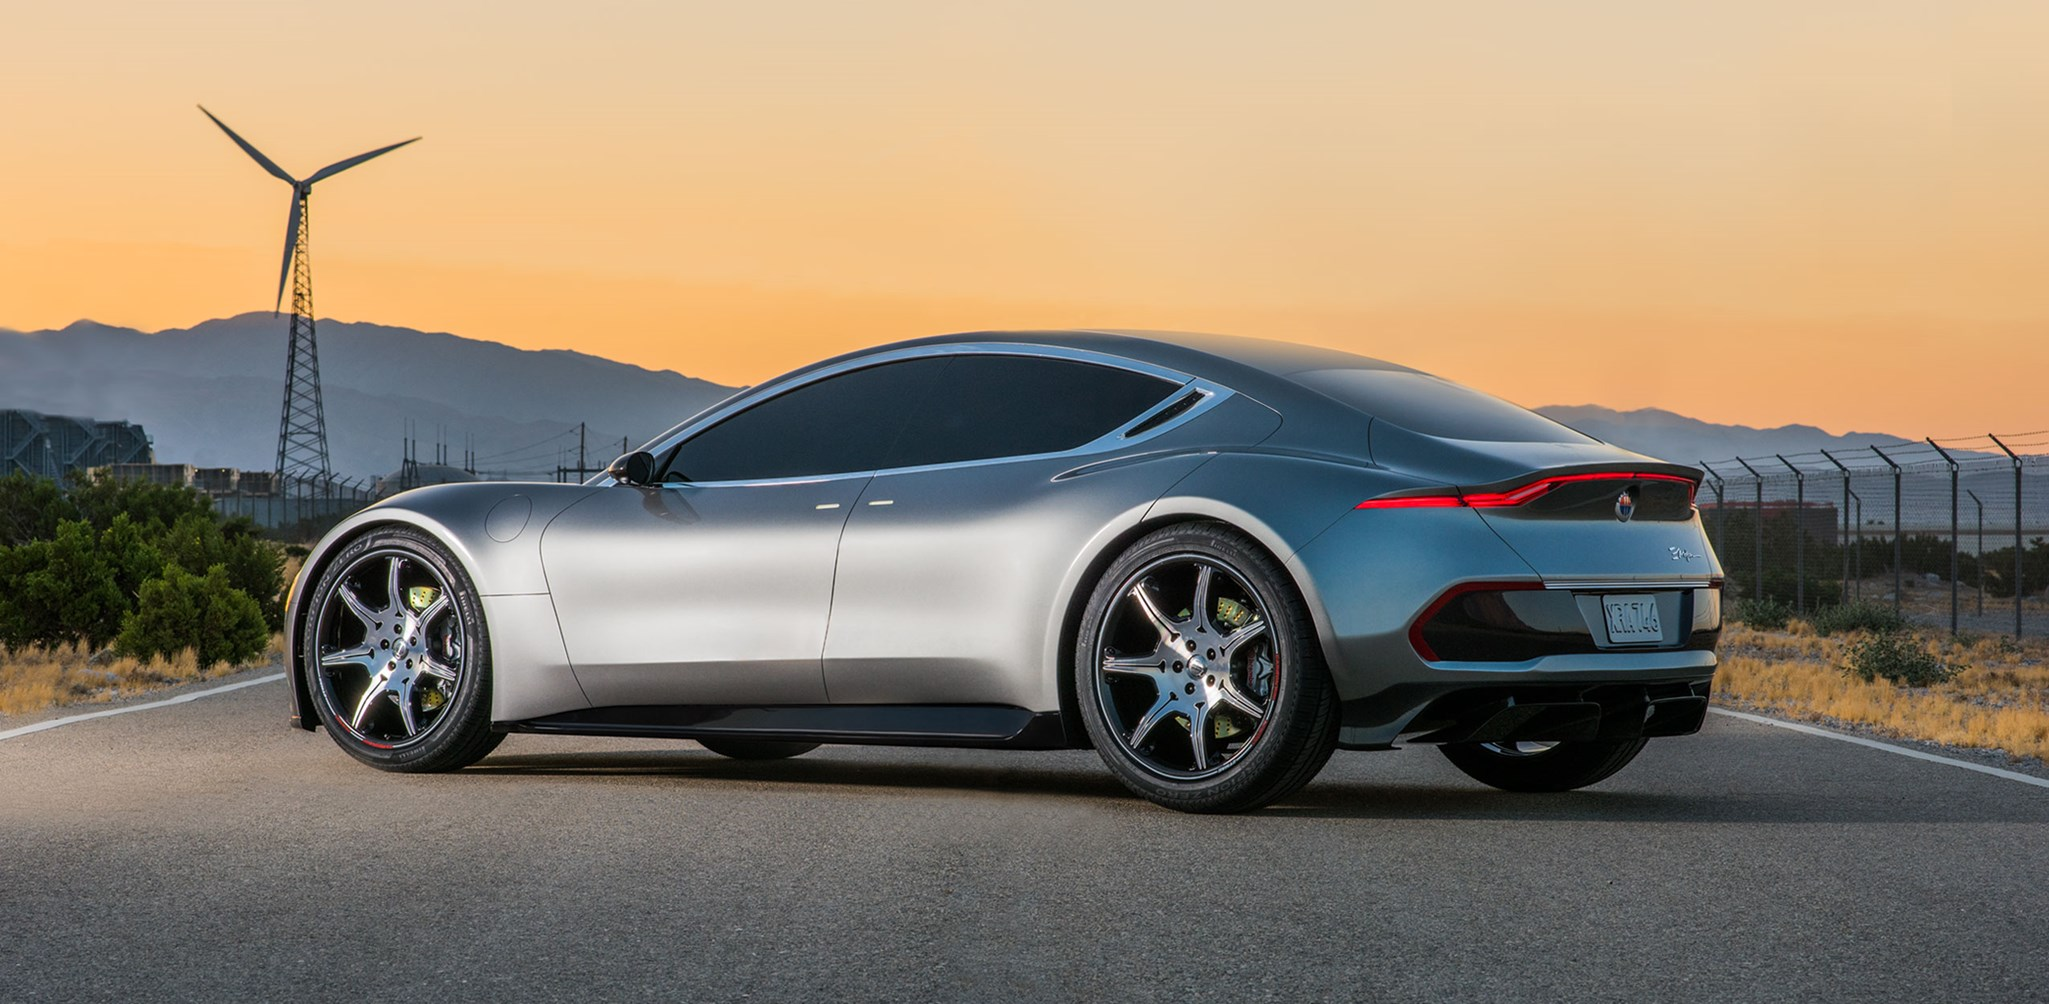 Fisker Emotion Electric Supercar New Pictures Reveal Stunning Erfly Doors